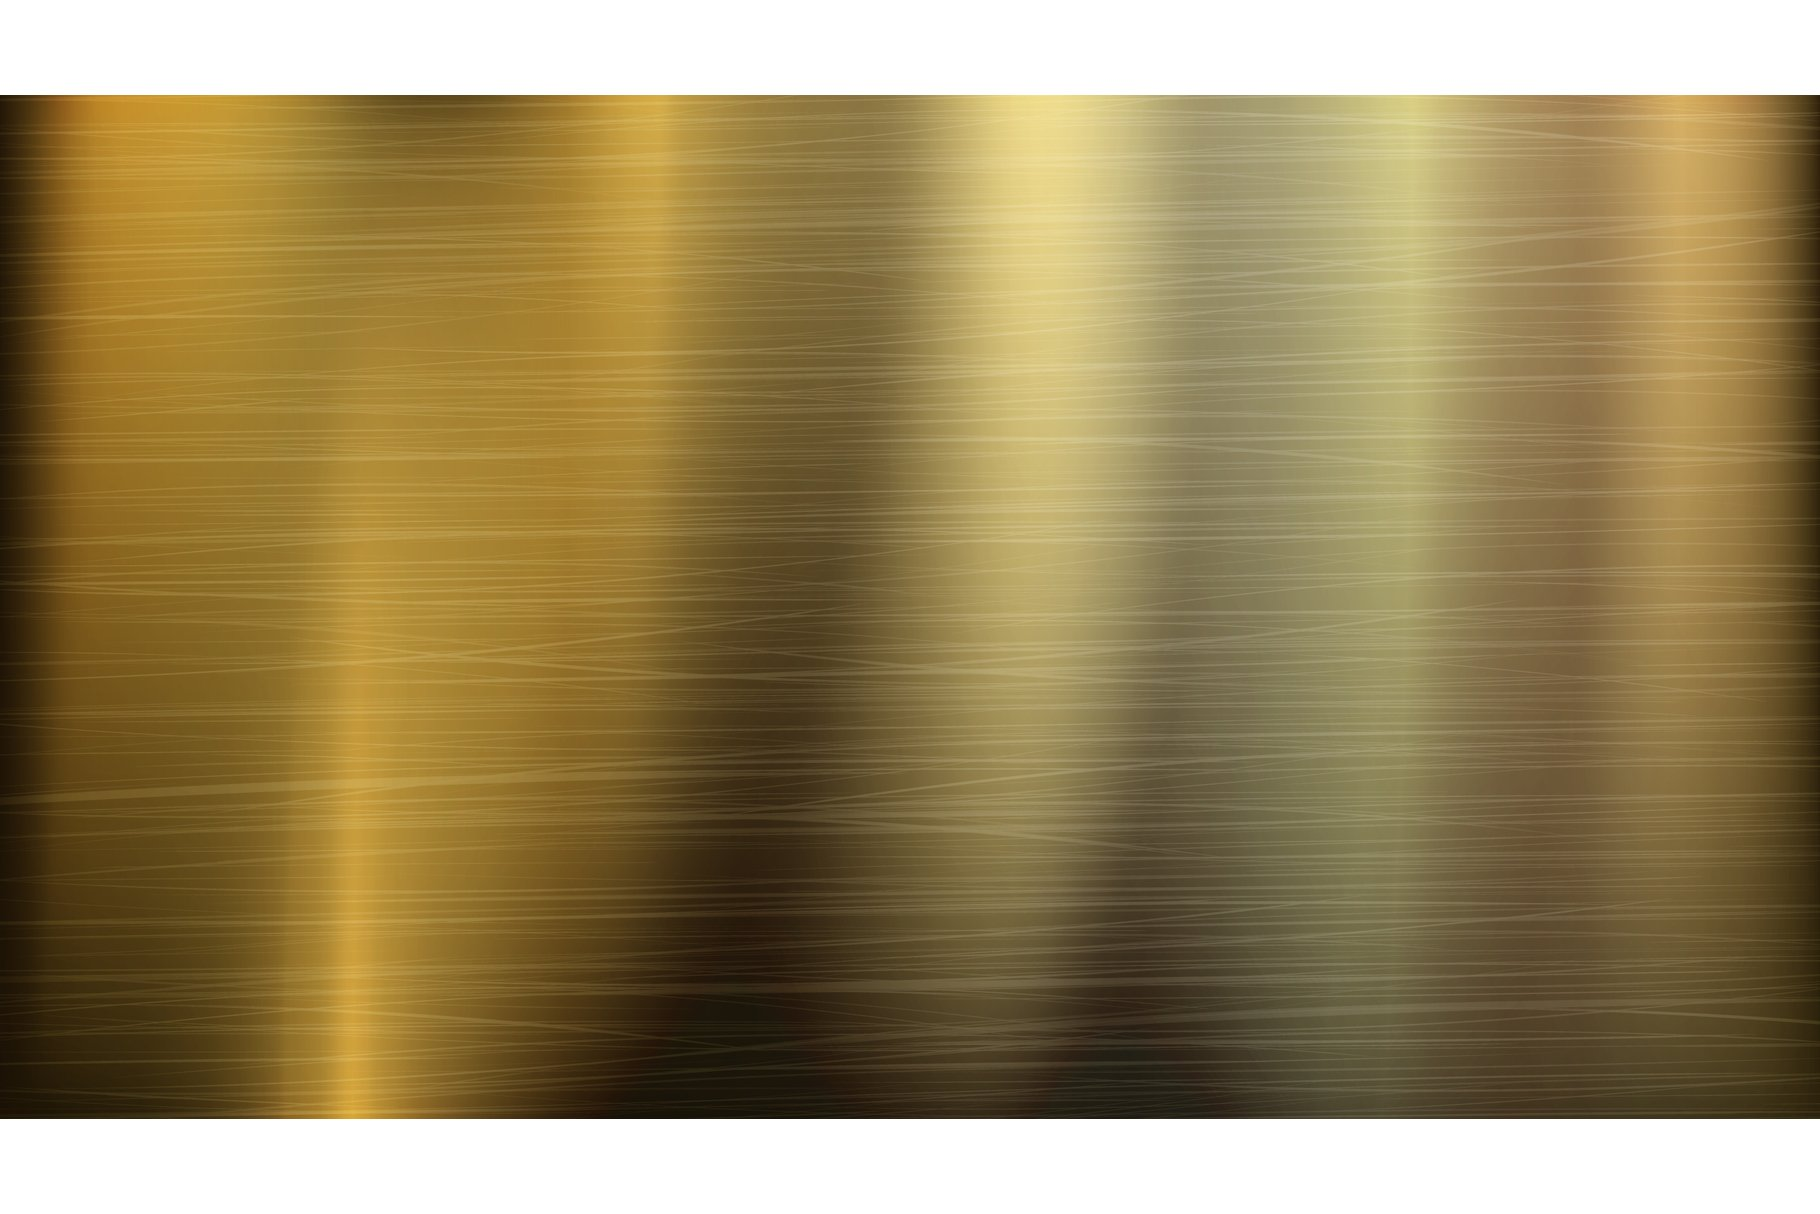 Gold Or Bronze Metal Abstract Technology Background. example image 1